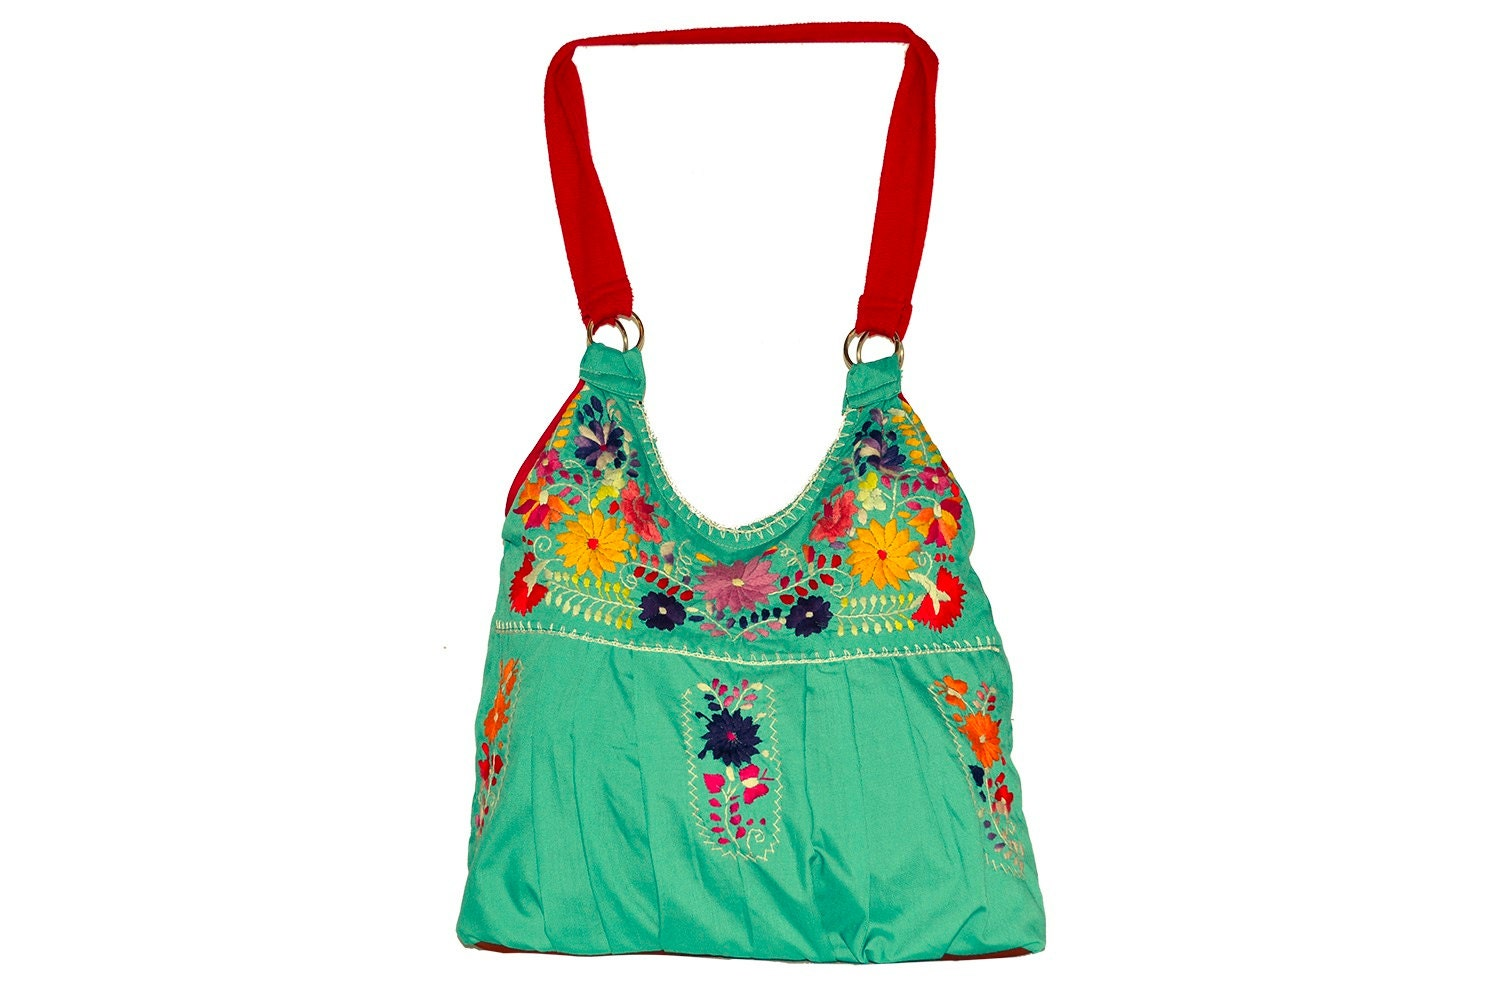 Mexican embroidered bag by rojoturquesamexico on etsy